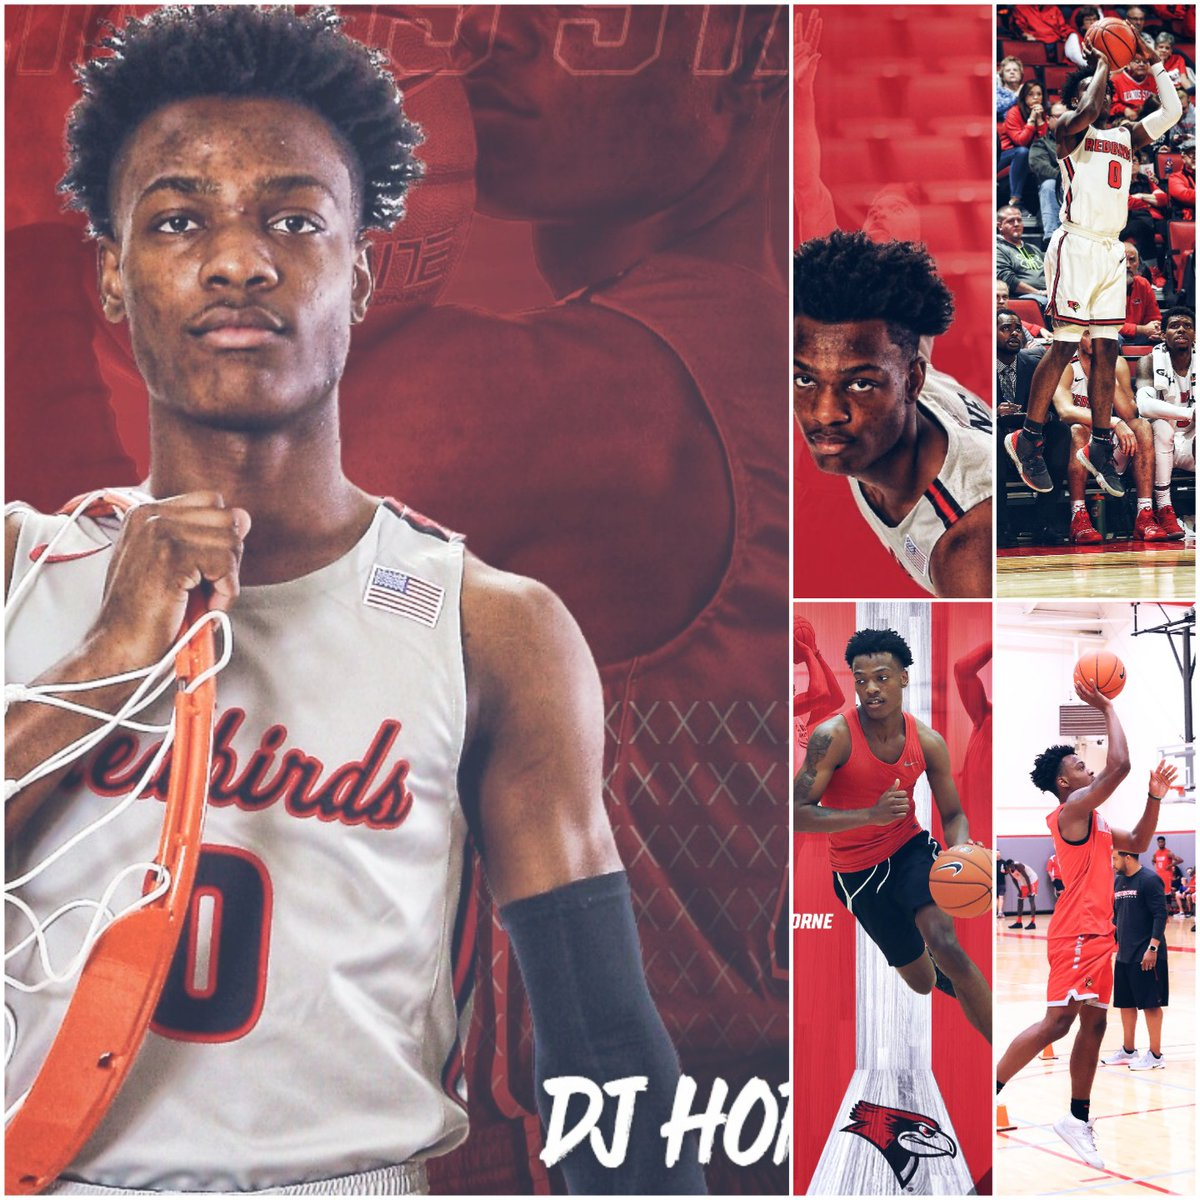 Freshman @djhorne0 ended his season with the 3rd-highest -point field goal percentage by a freshman in #REDBIRDhoops MBB history #makinghistory  .421   Victor Williams  .420   Tarise Bryson  .402   DJ Horne<br>http://pic.twitter.com/IQmekmxJTk